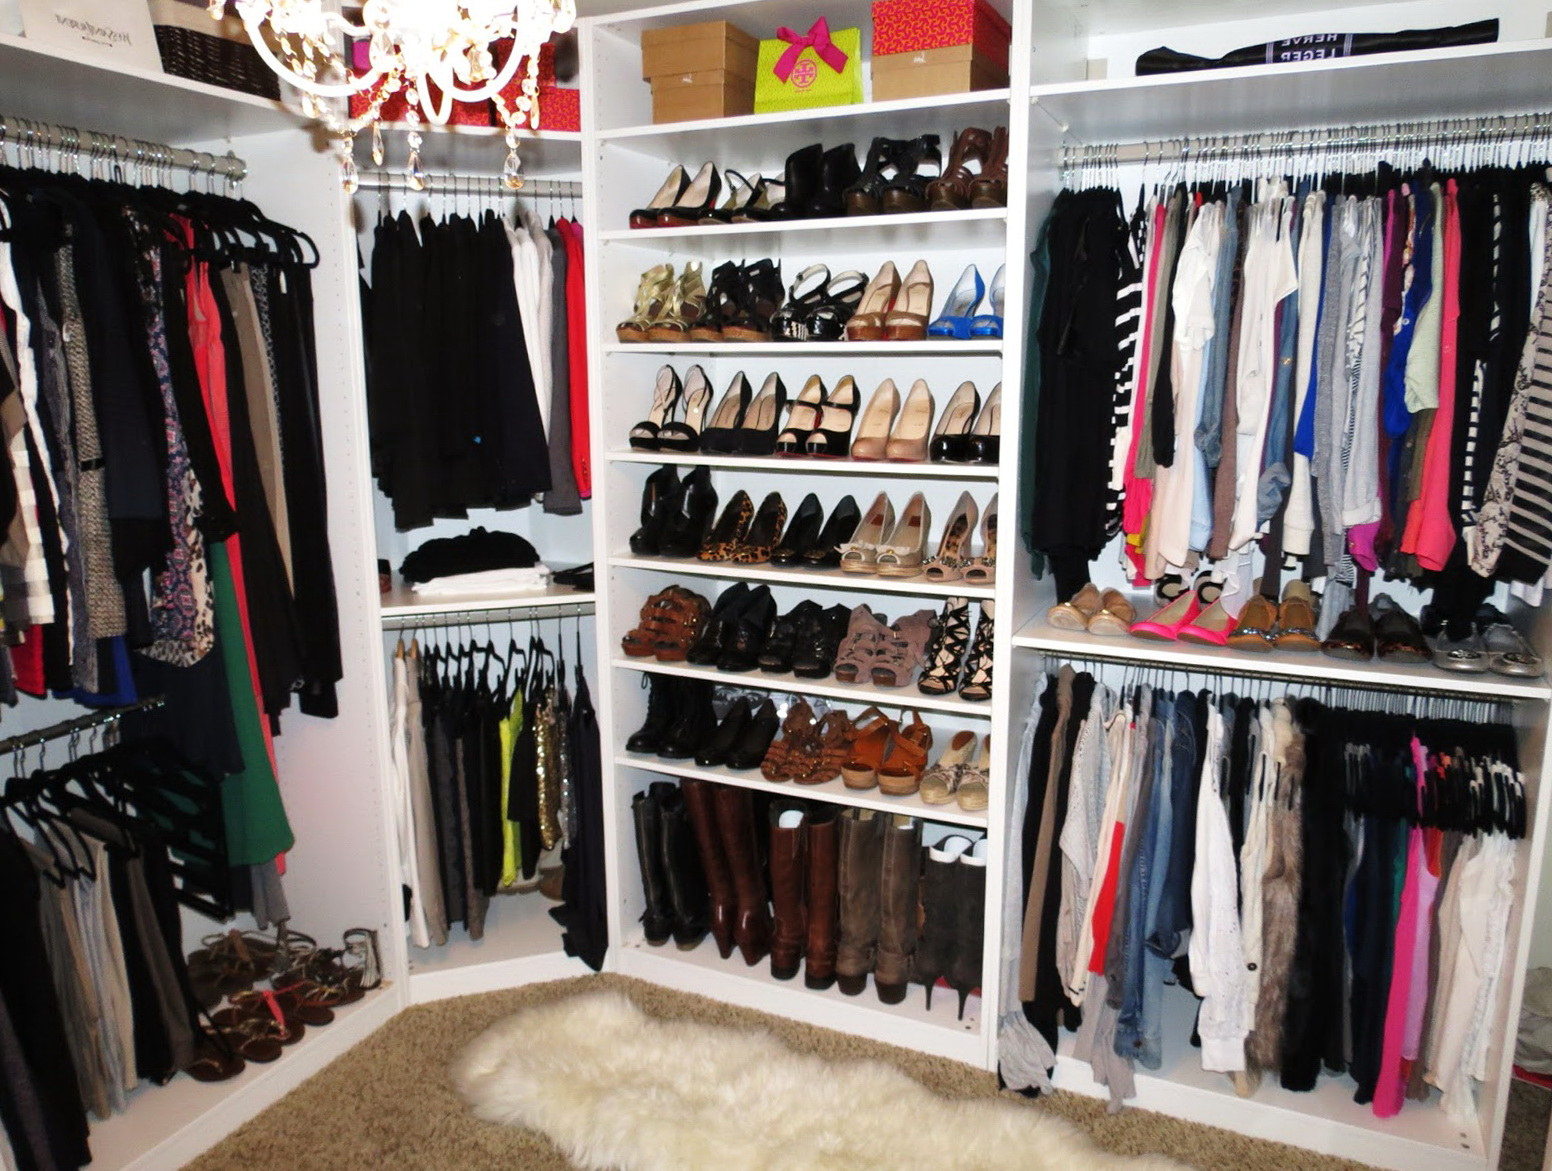 Closet Organization Ideas For Women. Elegant Dressing Room With Chic ...